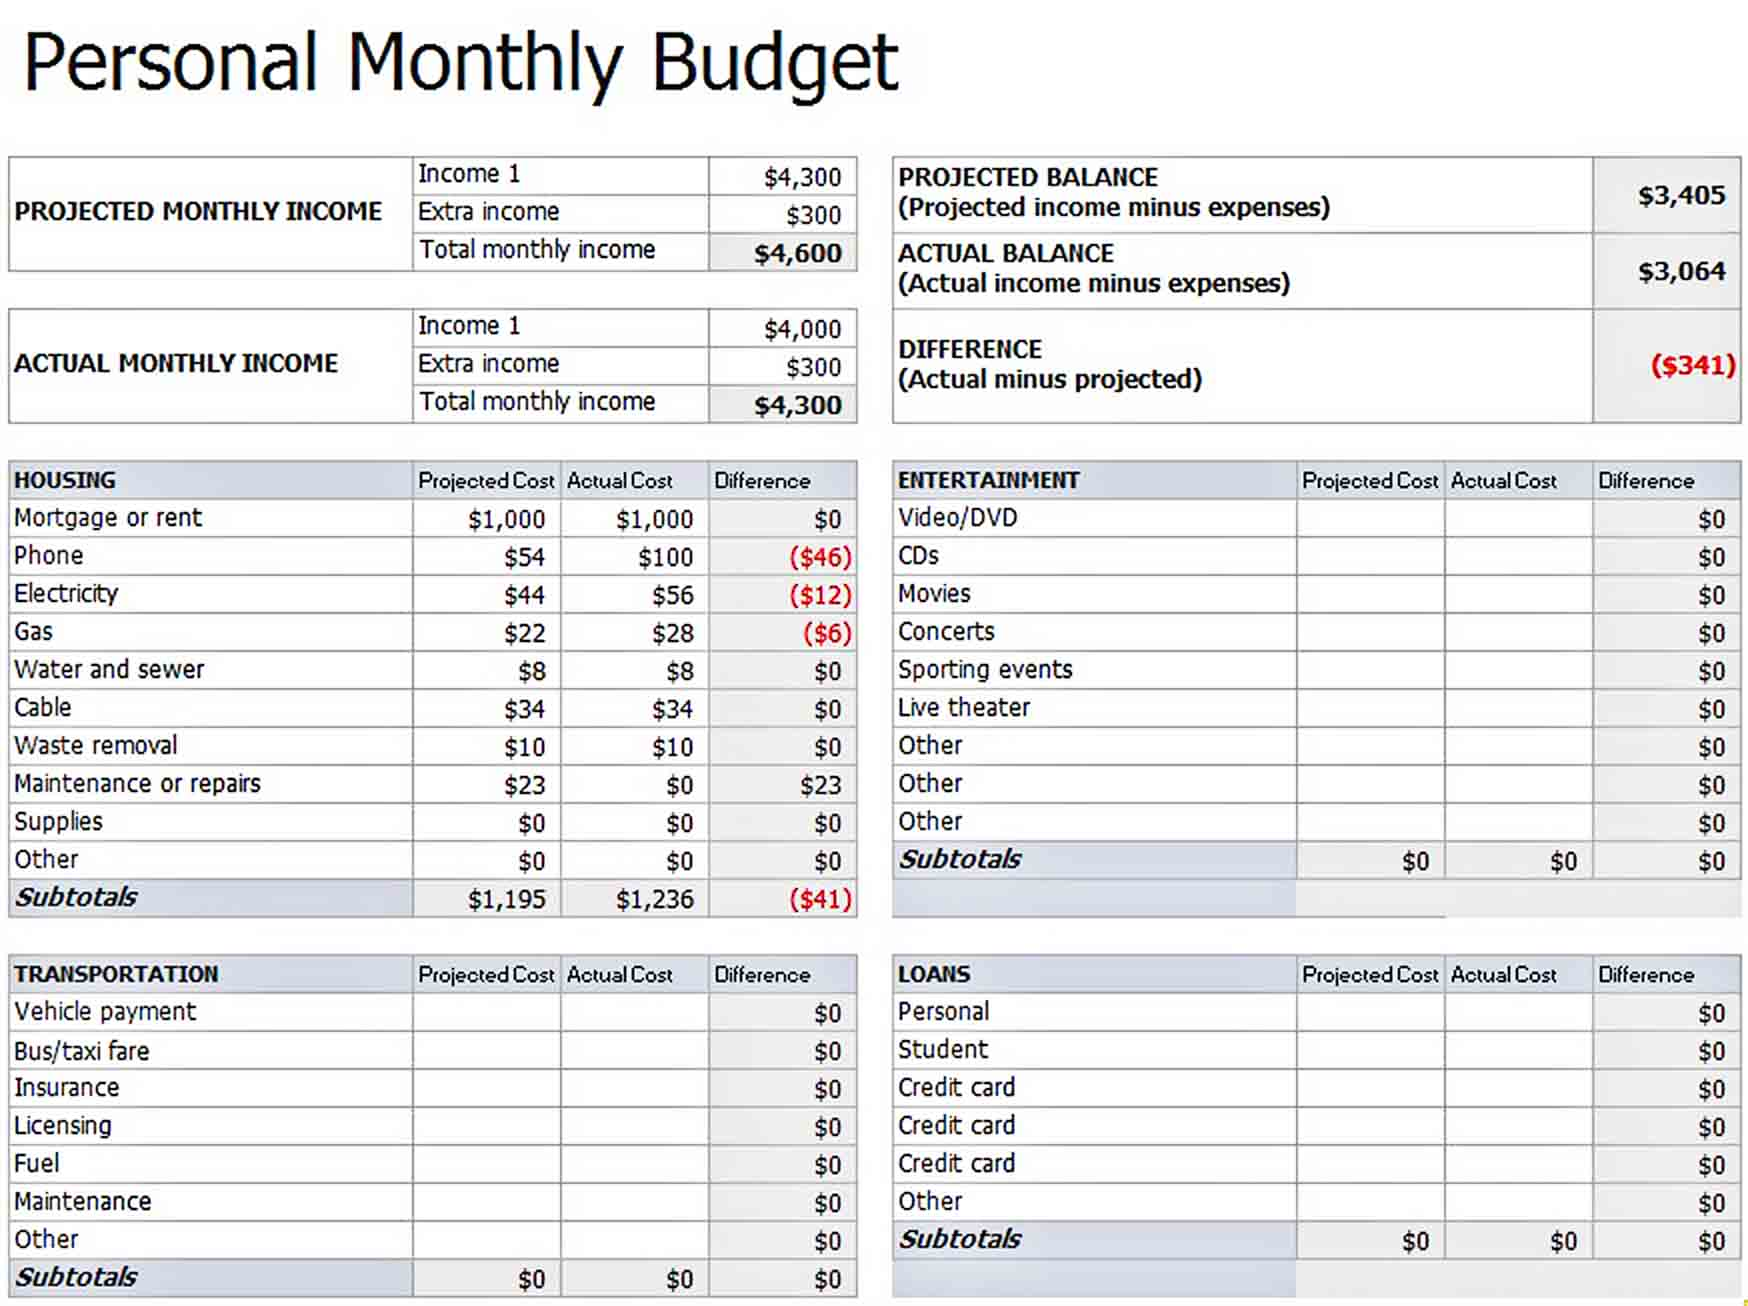 Personal Monthly Budget Template sample